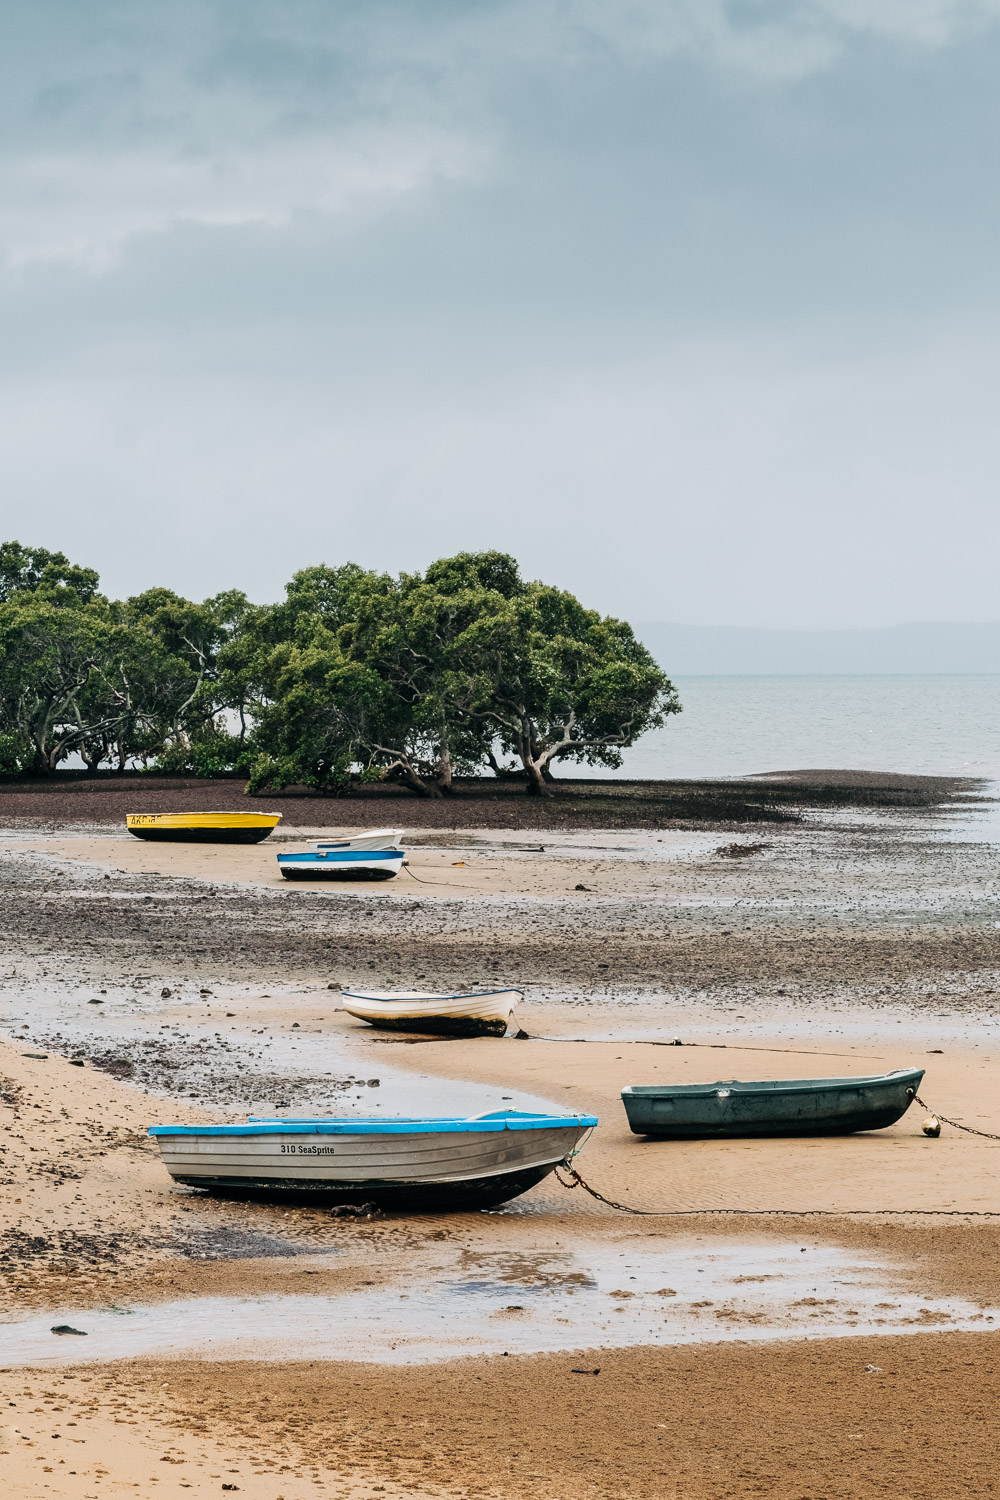 Image: Boats on the beach. I'm really happy with the sharpness, colors, and contrast of the images t...